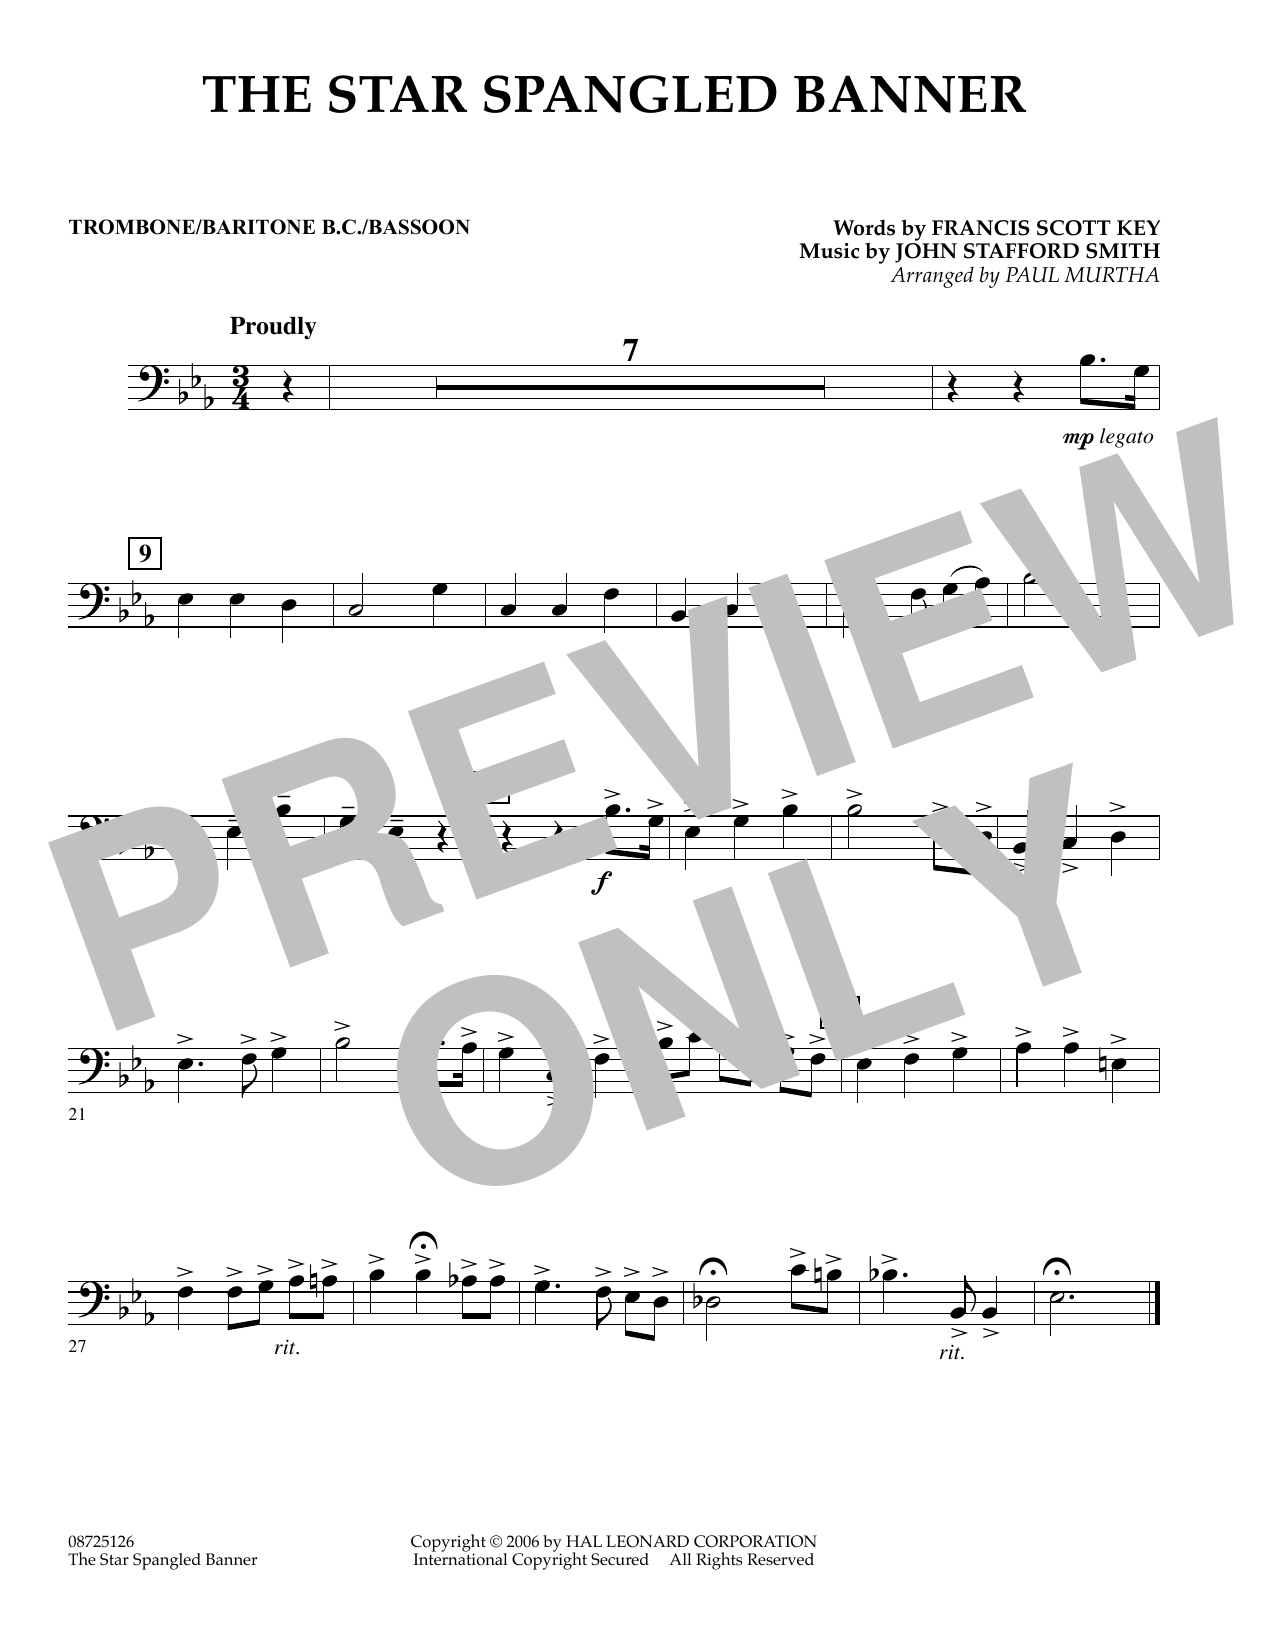 Paul Murtha The Star Spangled Banner - Trombone/Baritone B.C./Bassoon sheet music preview music notes and score for Concert Band including 1 page(s)